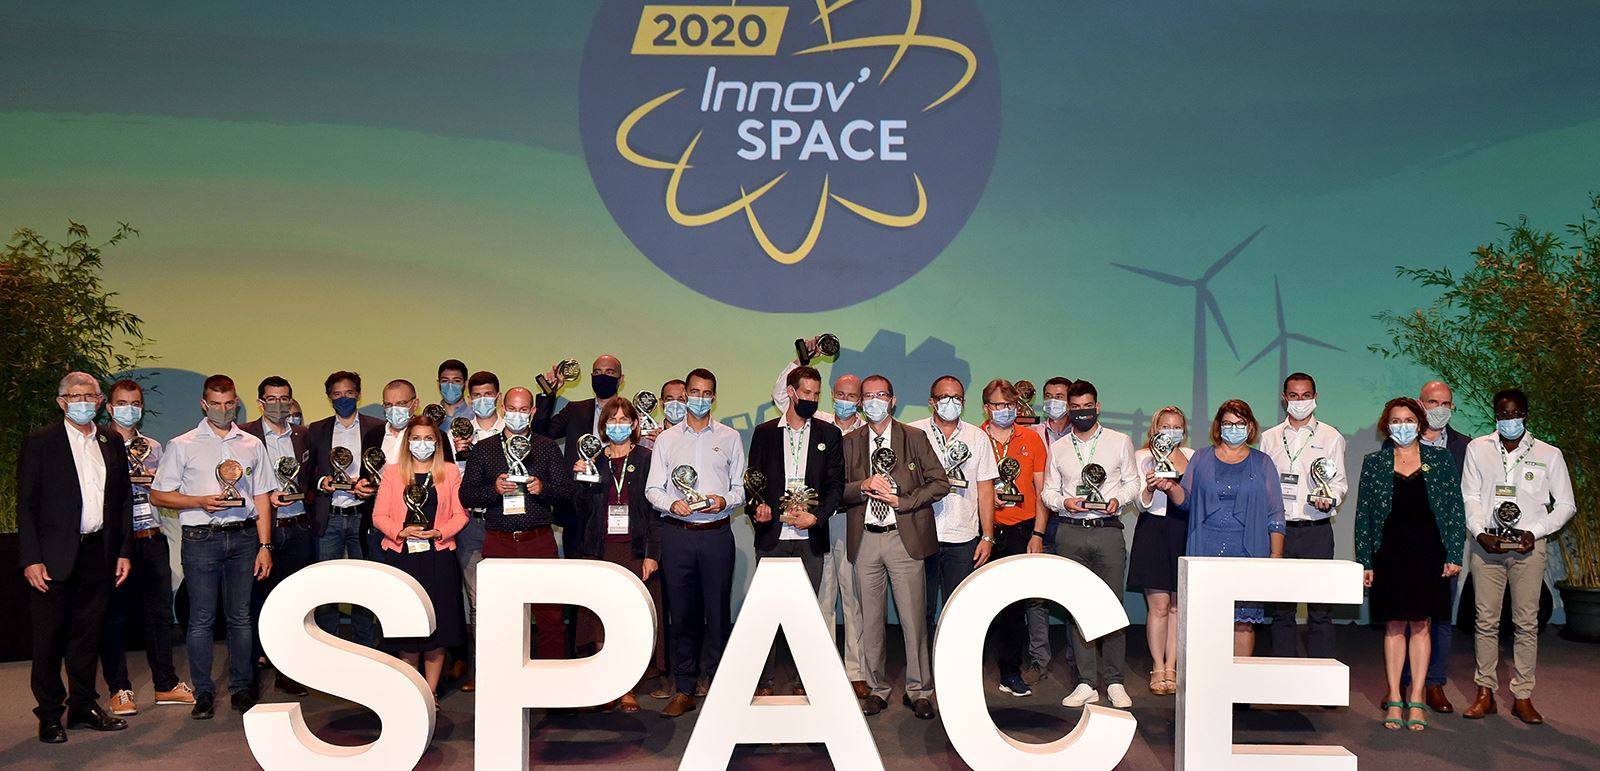 Innov'Space - the best of innovation